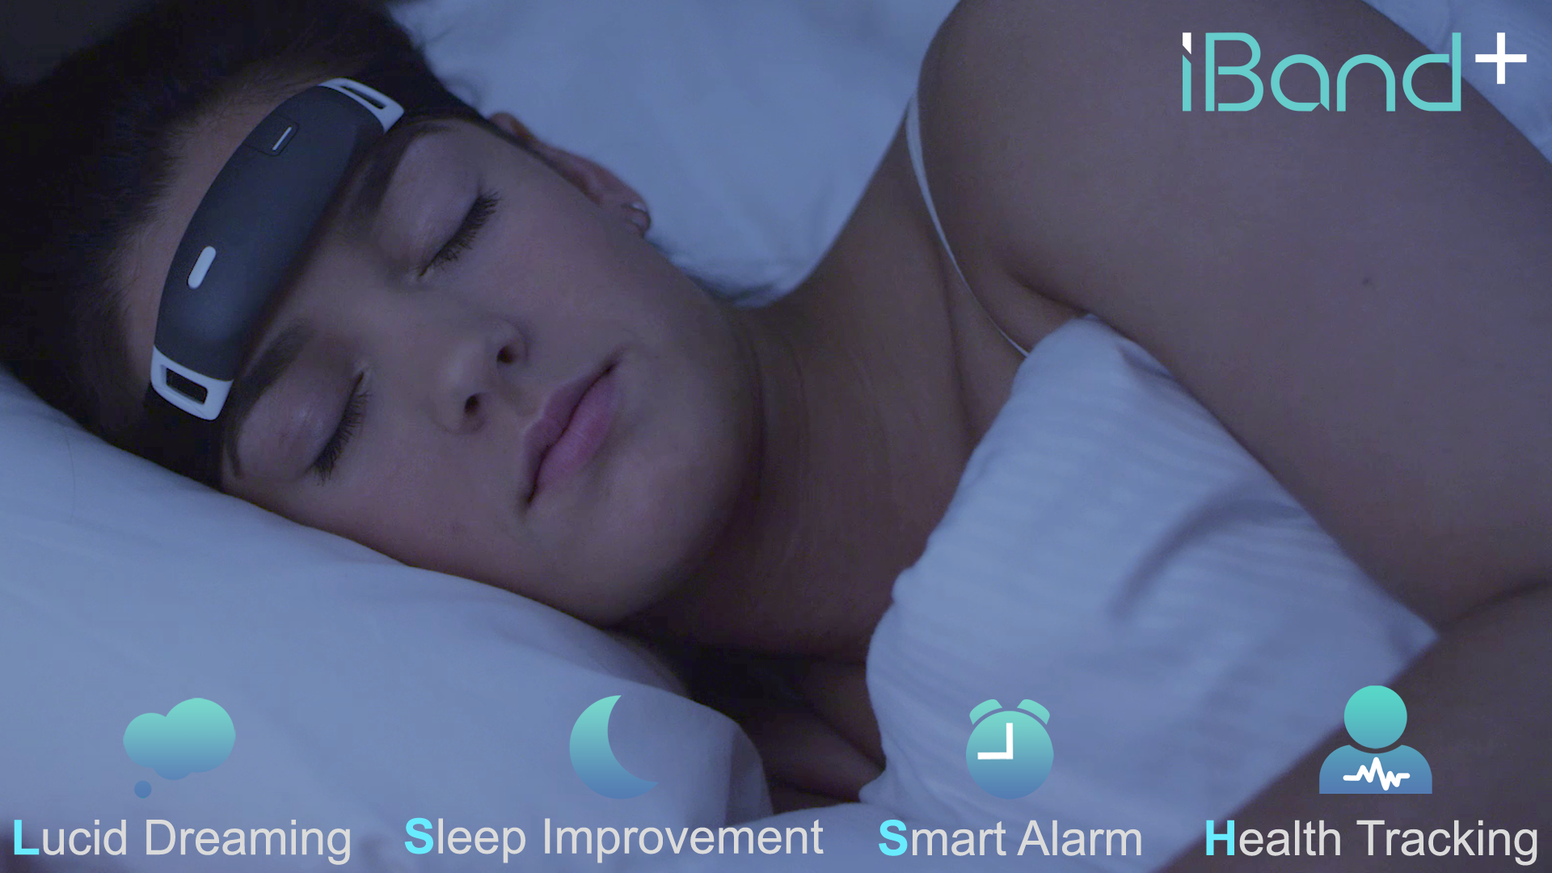 Experience lucid dreams - Improve sleep with music that intelligently adjusts to your sleep phases - Wake up refreshed, every time!